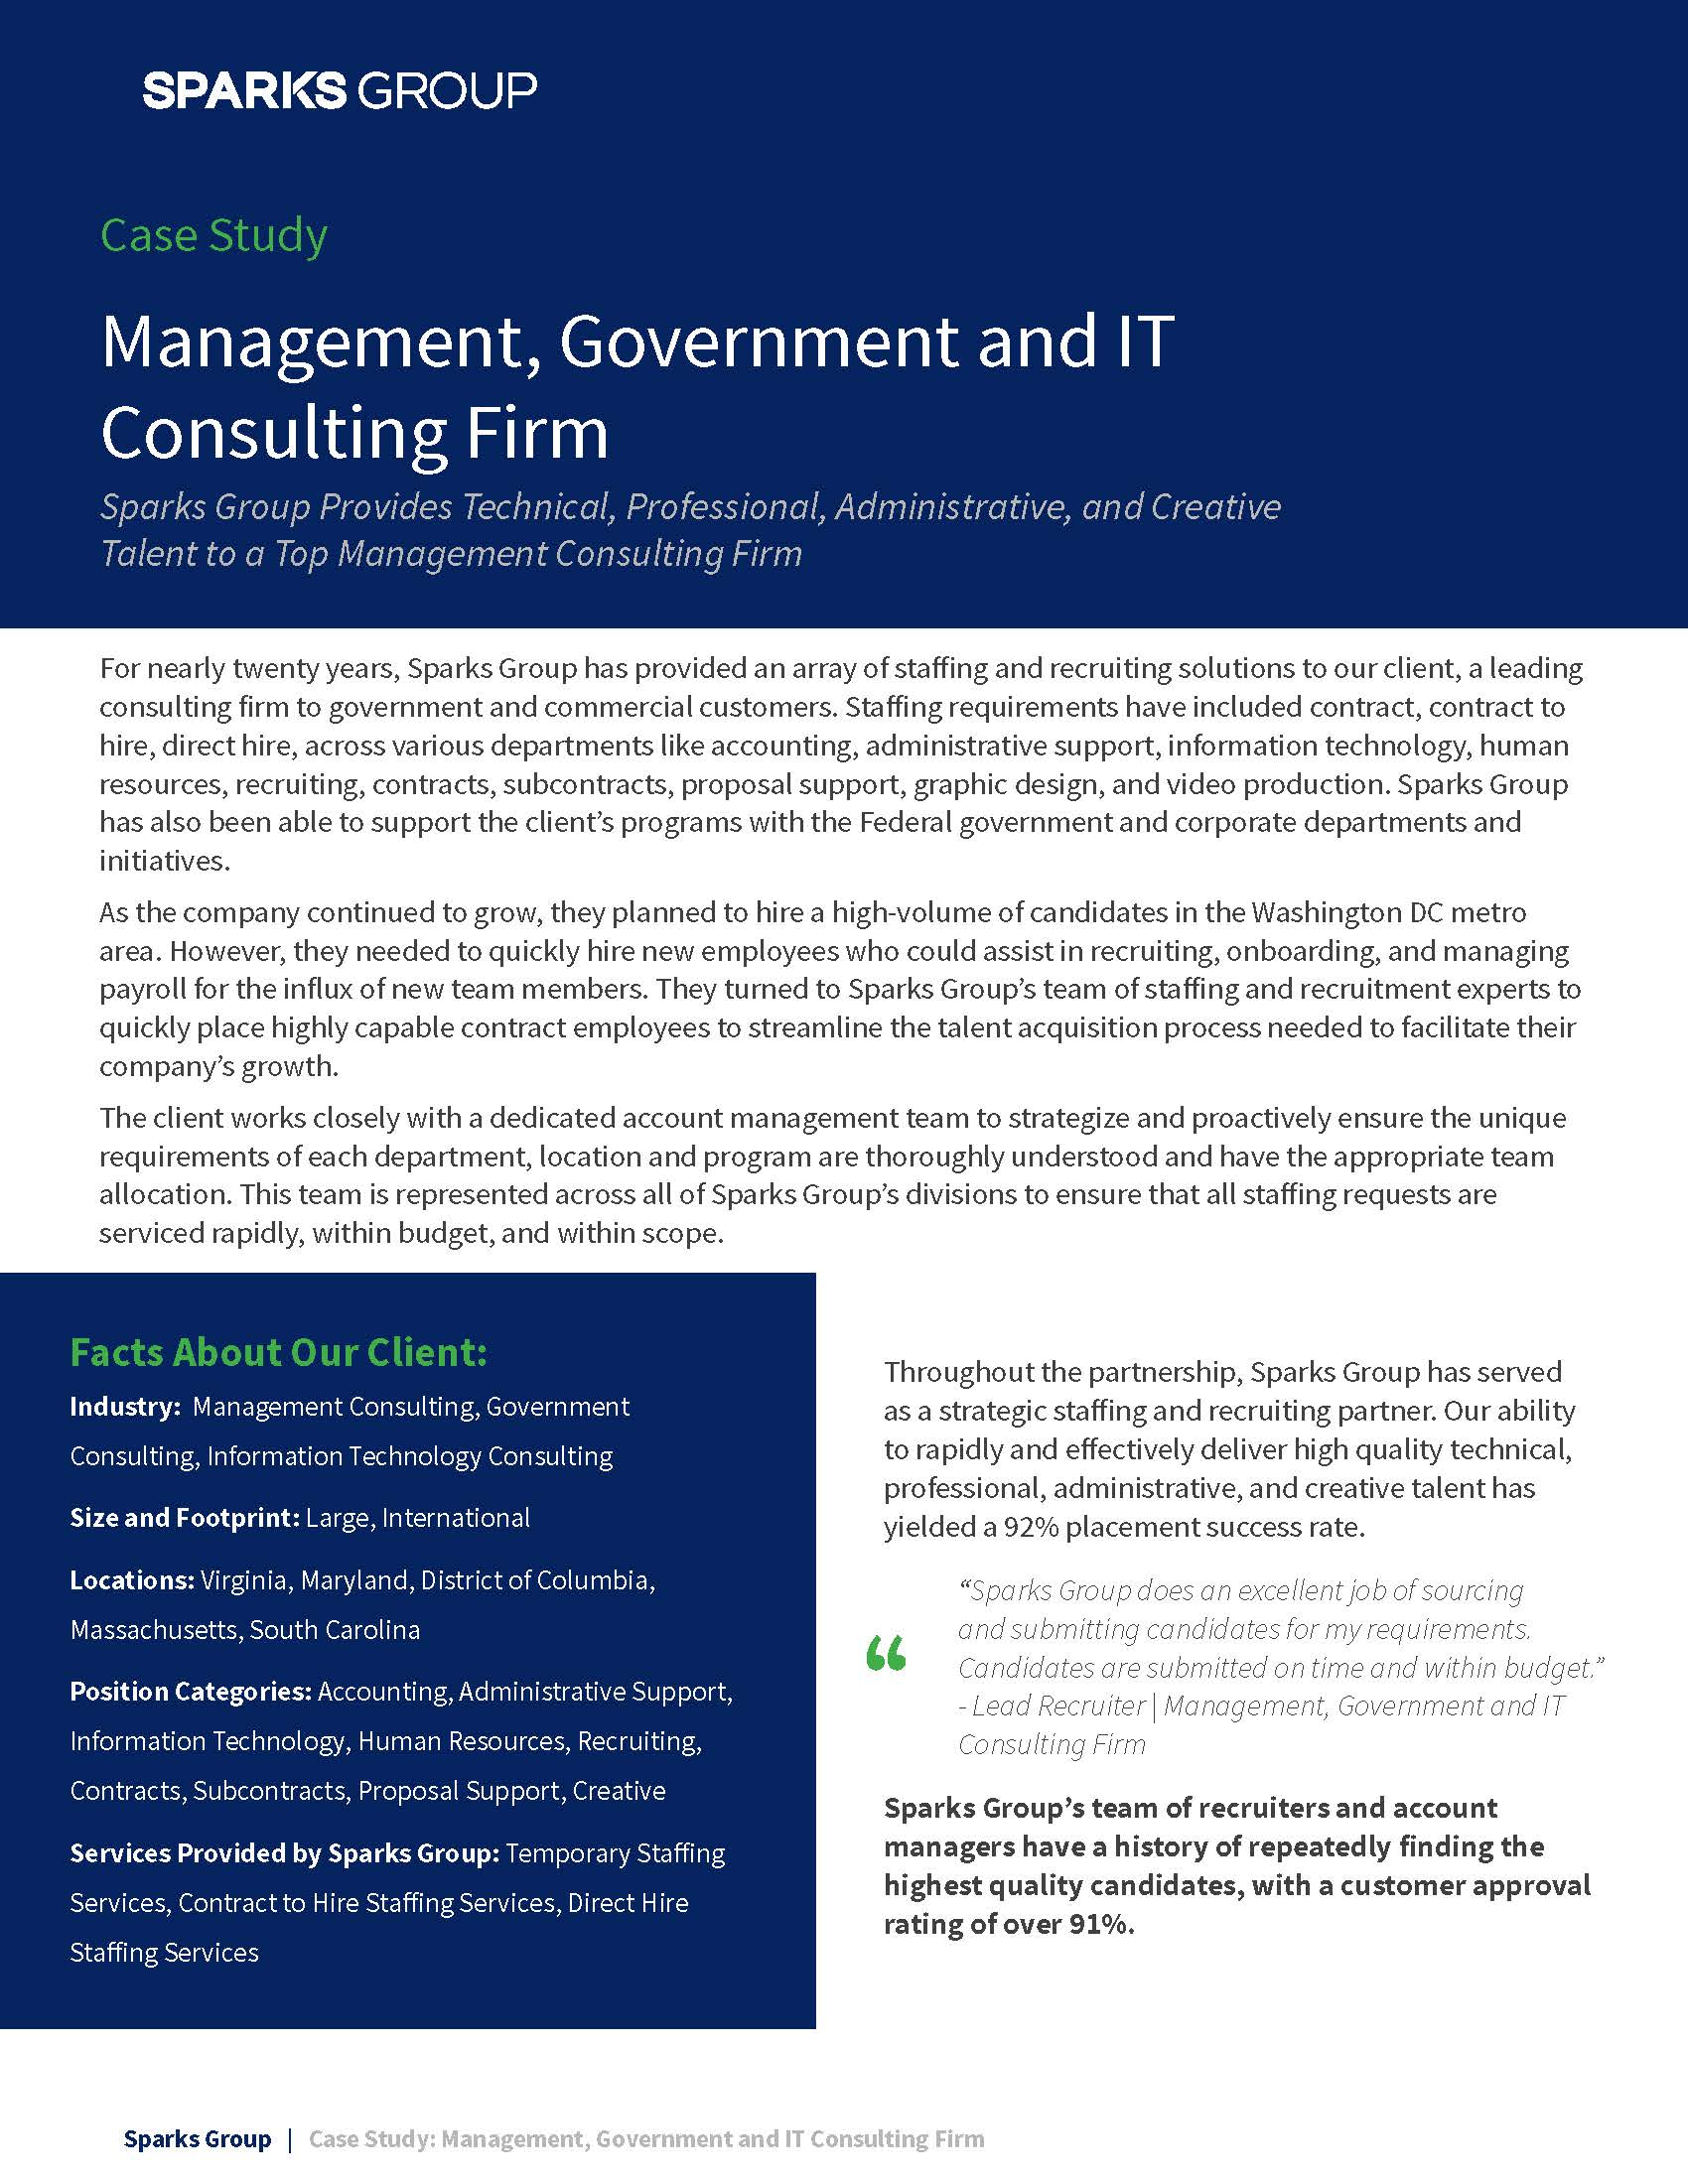 Staffing Agency Case Study: Management, Government and IT Consulting Firm